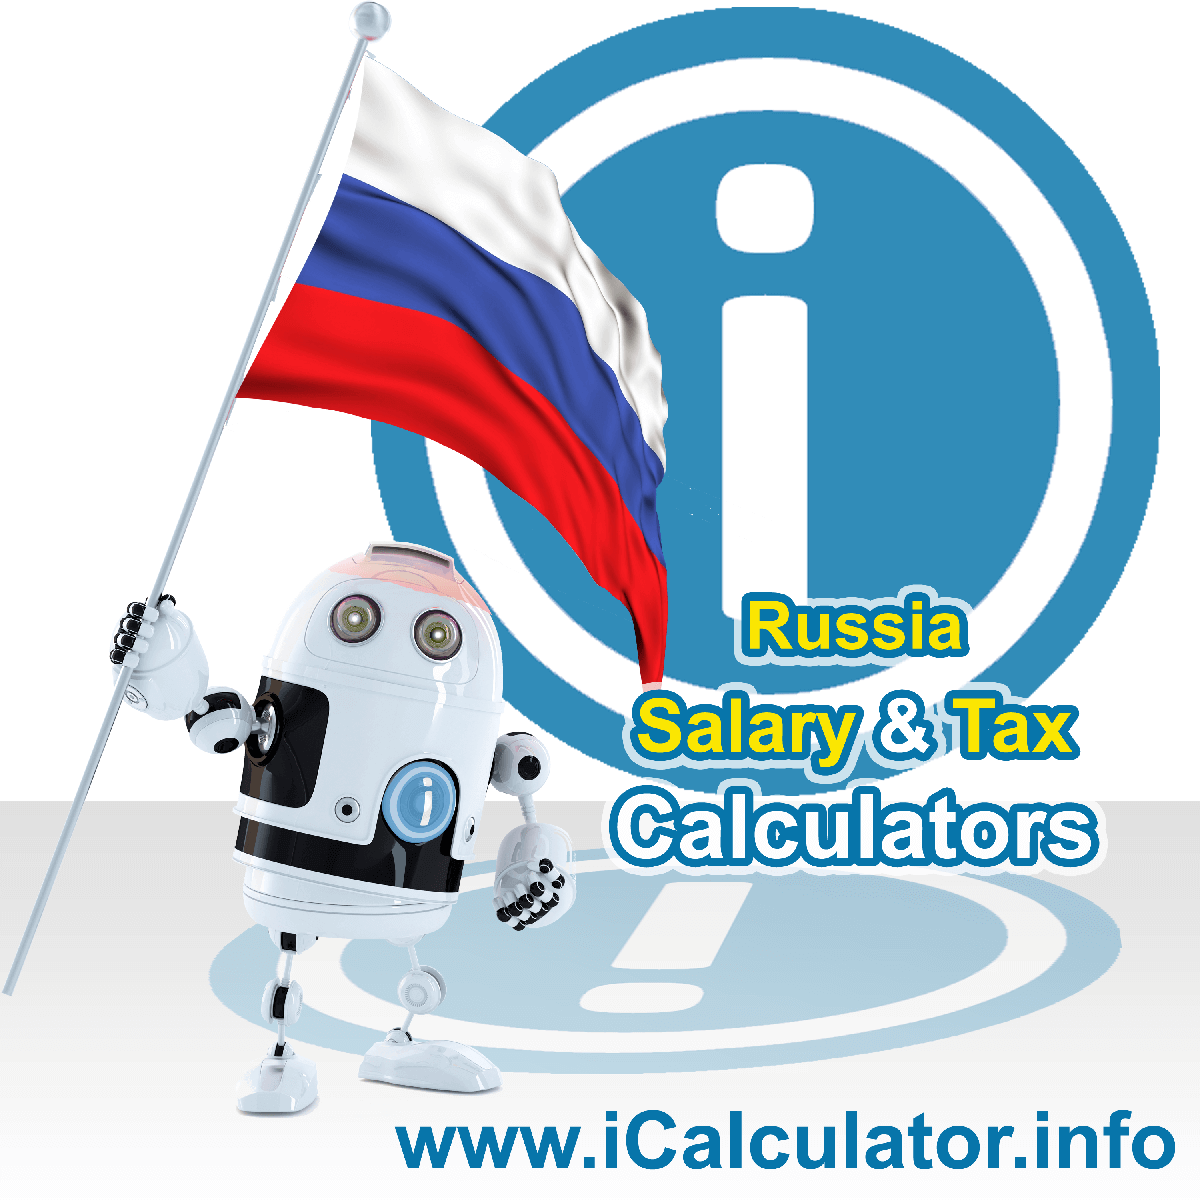 Russia Wage Calculator. This image shows the Russia flag and information relating to the tax formula for the Russia Tax Calculator